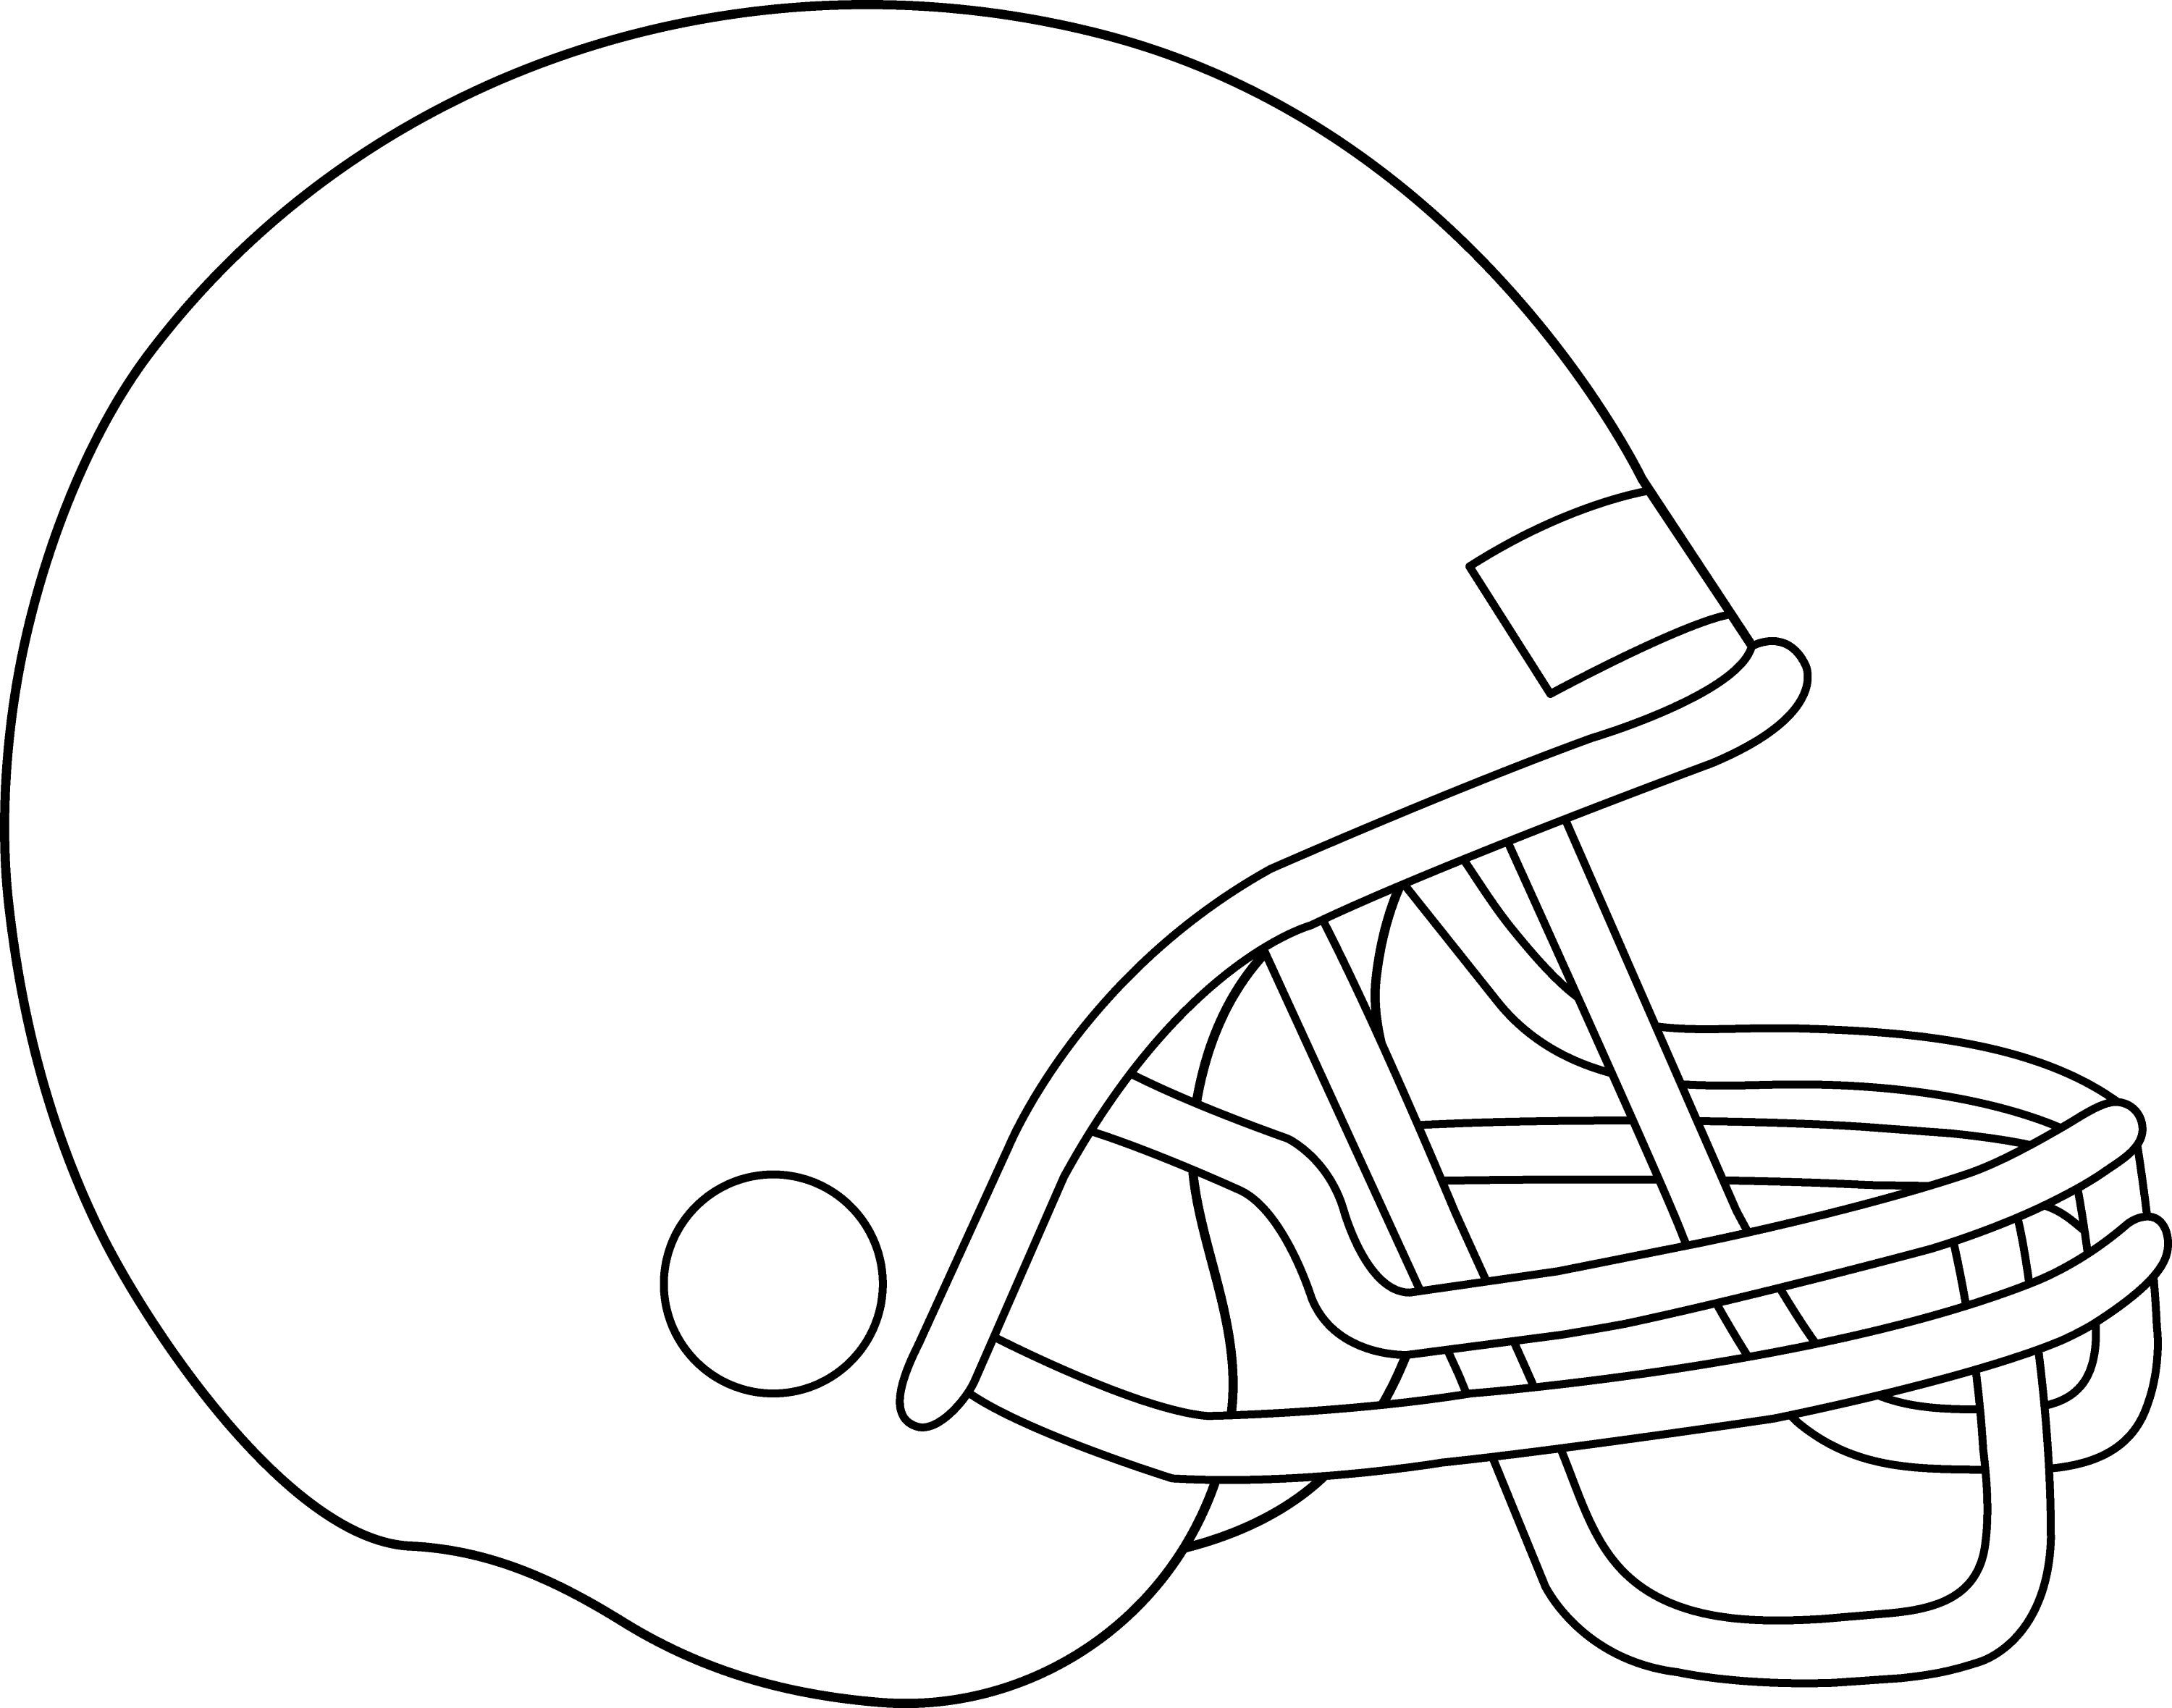 helmet coloring pages 25 creative picture of football helmet coloring page pages coloring helmet